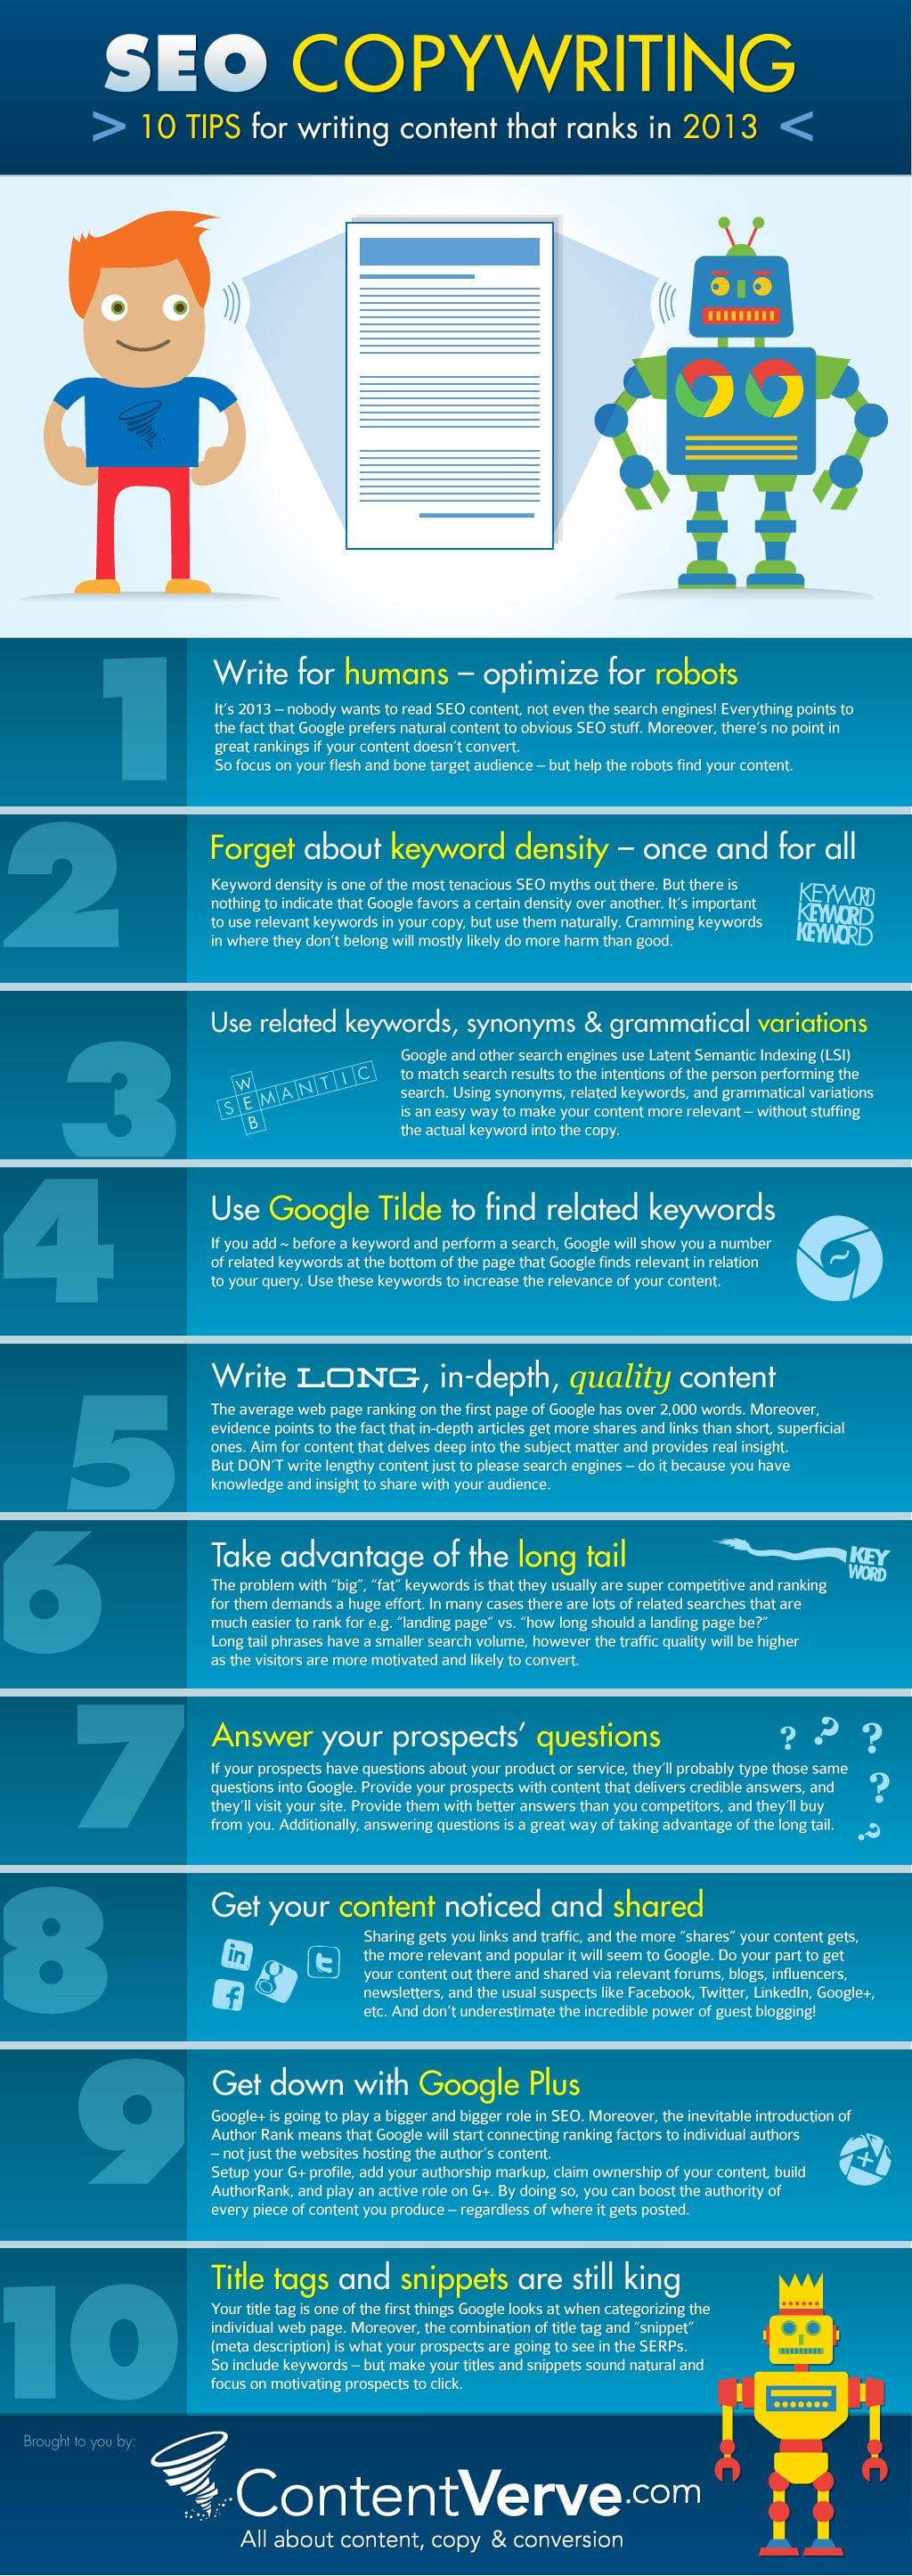 10 SEO Copywriting Tips That Will Help Your Content Rank [Infographic]